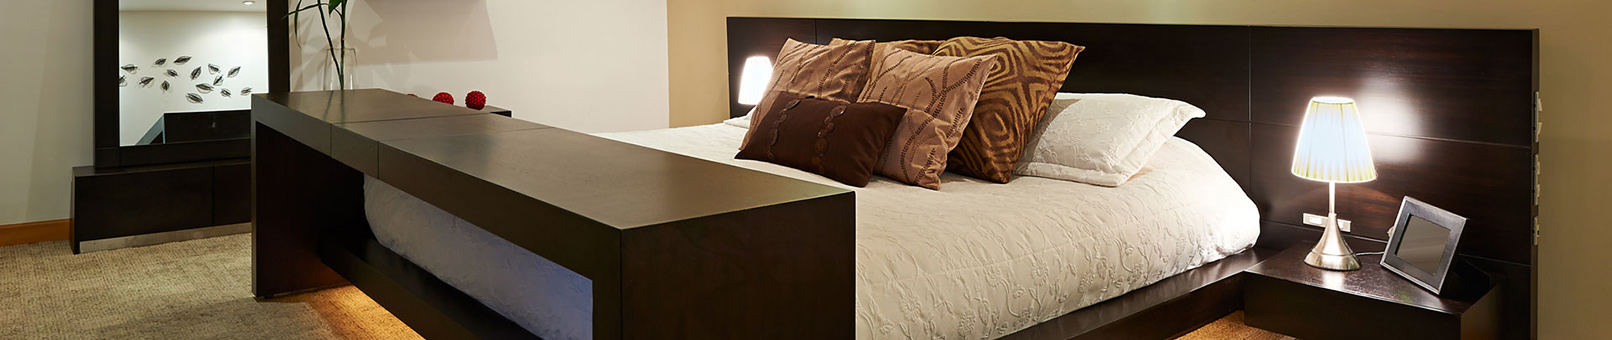 Beds, Mattresses & Bedroom Furniture